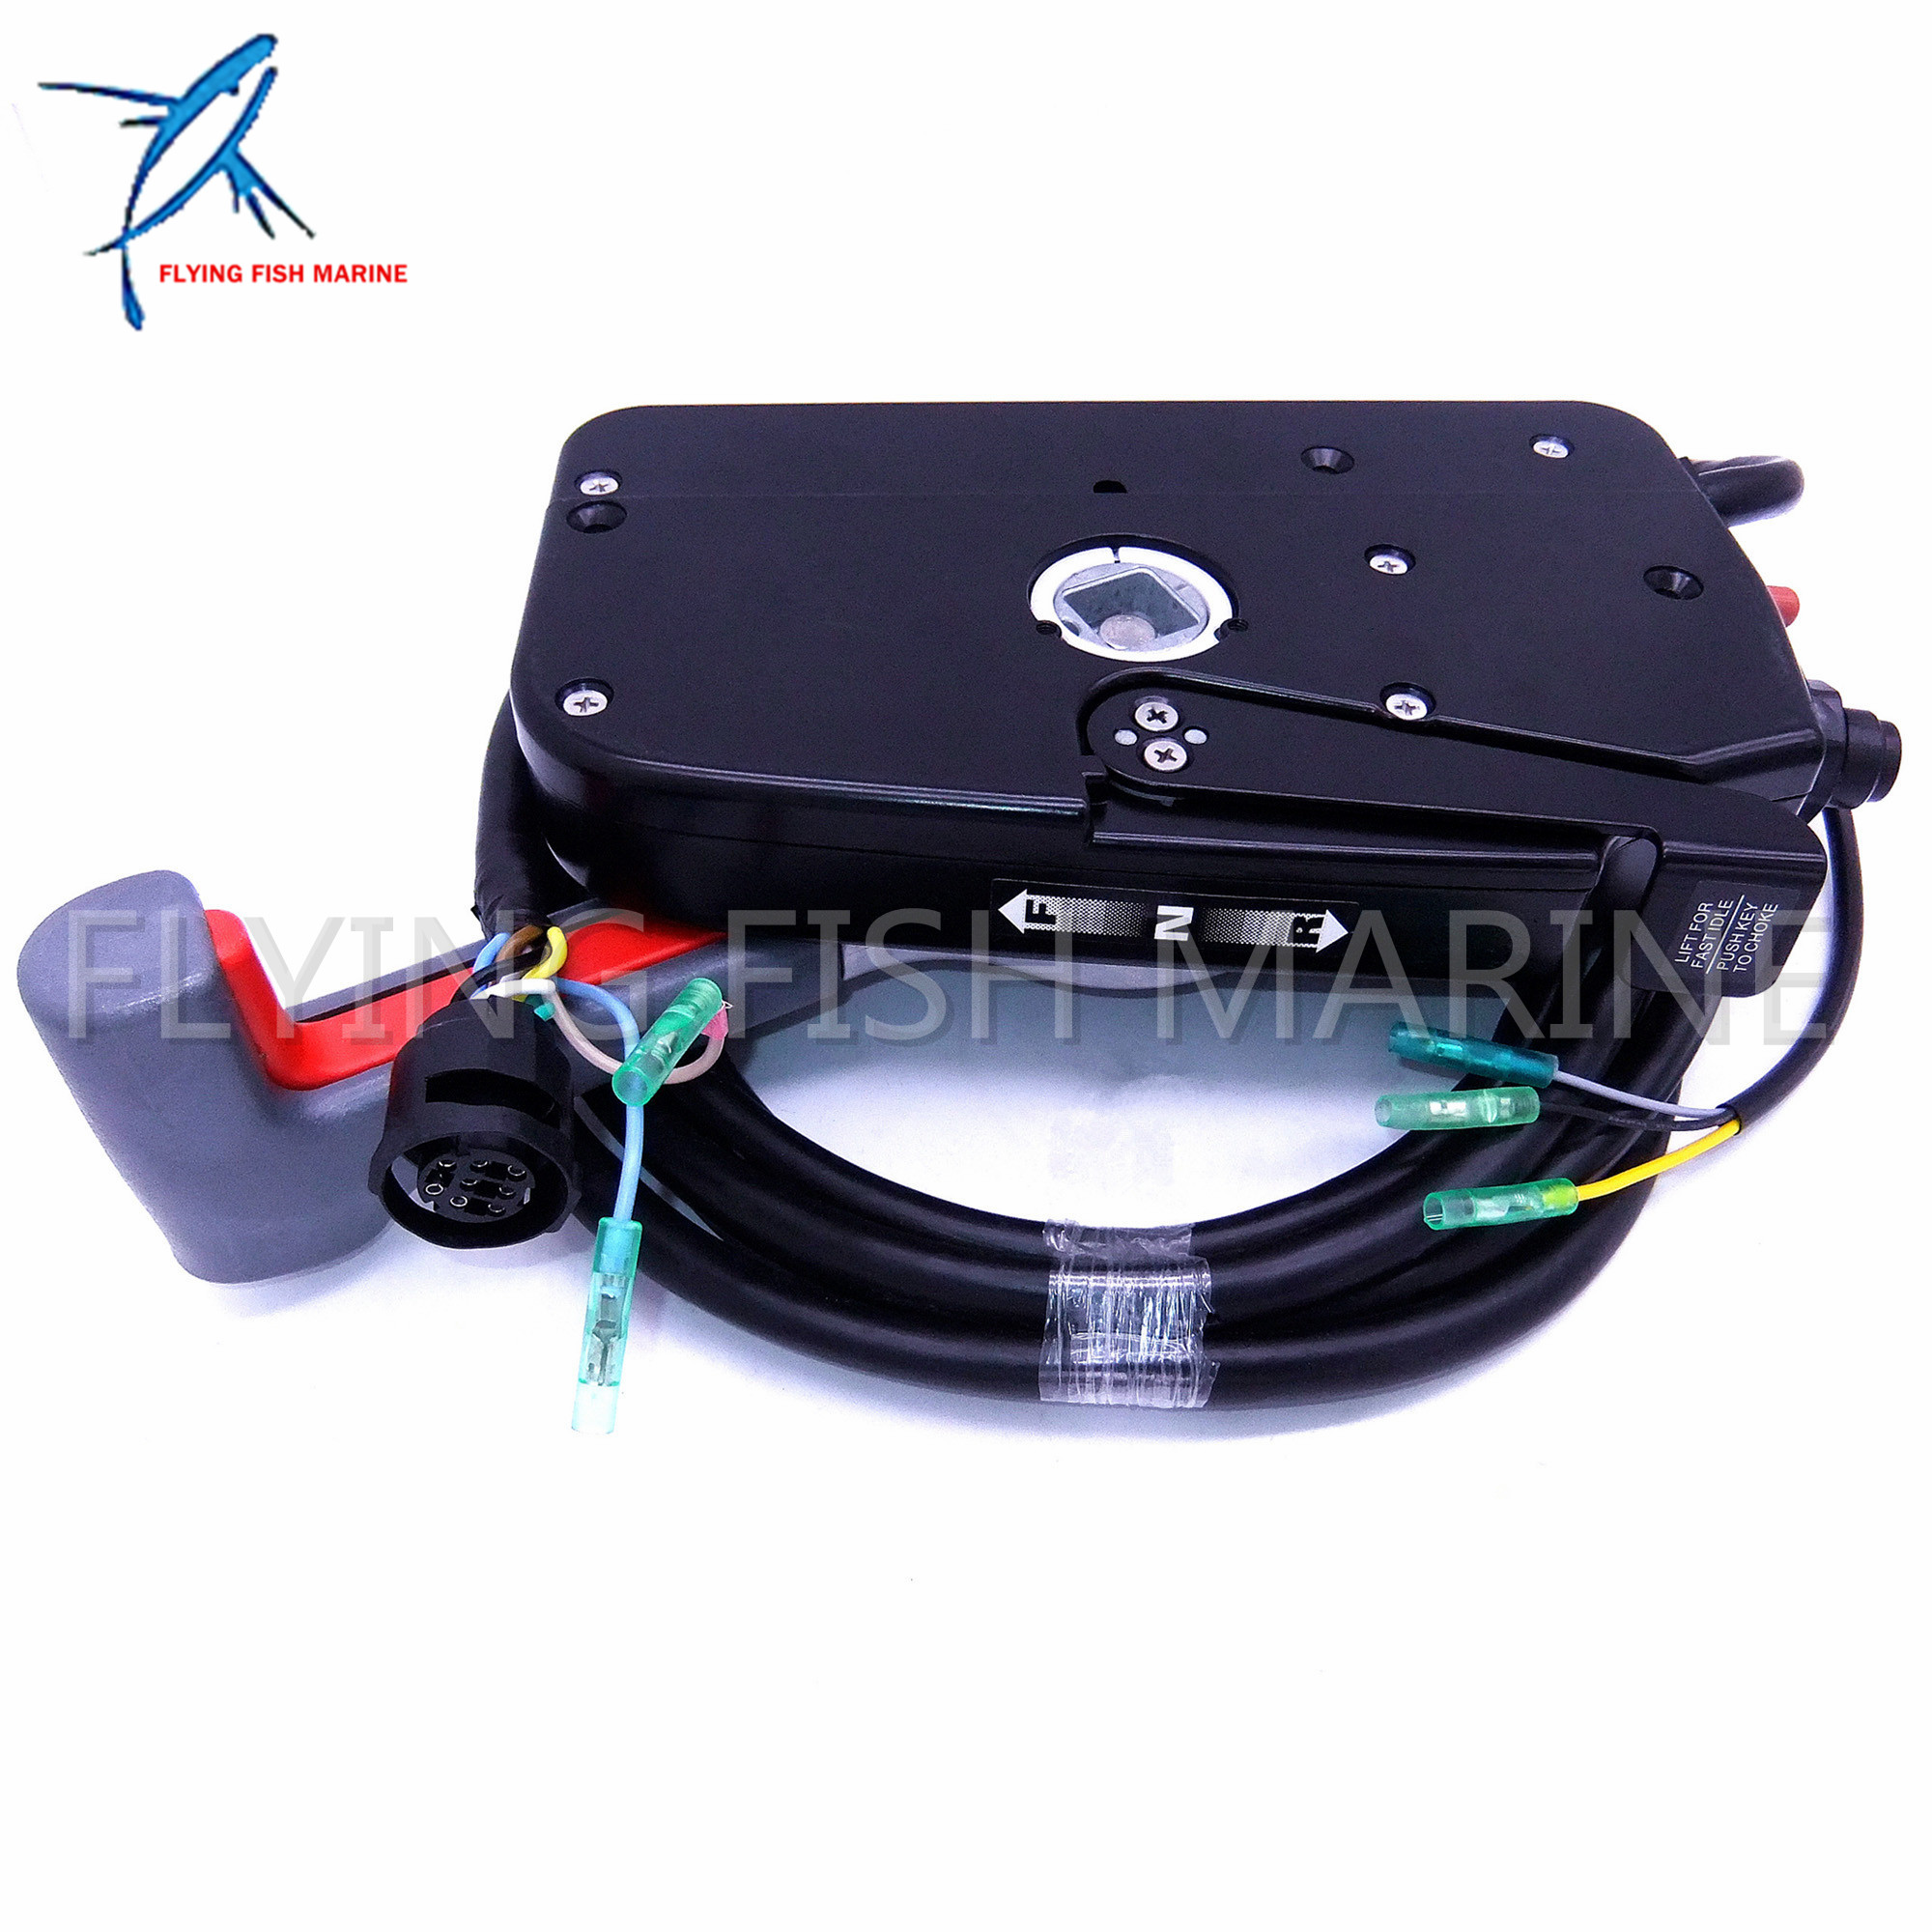 67200 99E56 Side Remote Control Box for Suzuki Outboard Motors with PT Push 67000 99E56 67200 99E71 ,Free Shipping-in Boat Engine from Automobiles & Motorcycles    1